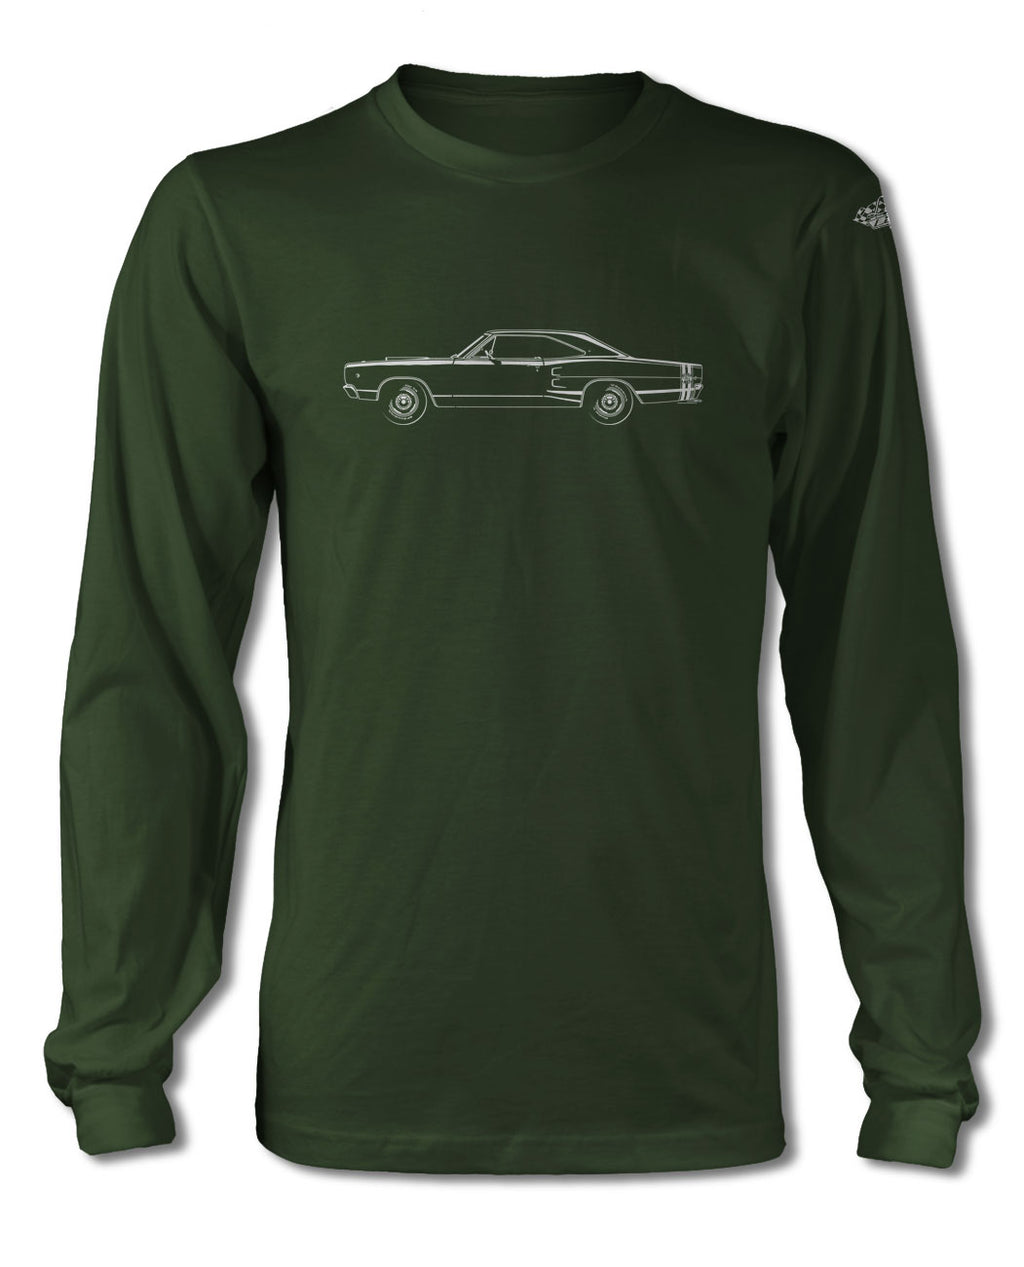 1968 Dodge Coronet Super Bee Coupe T-Shirt - Long Sleeves - Side View